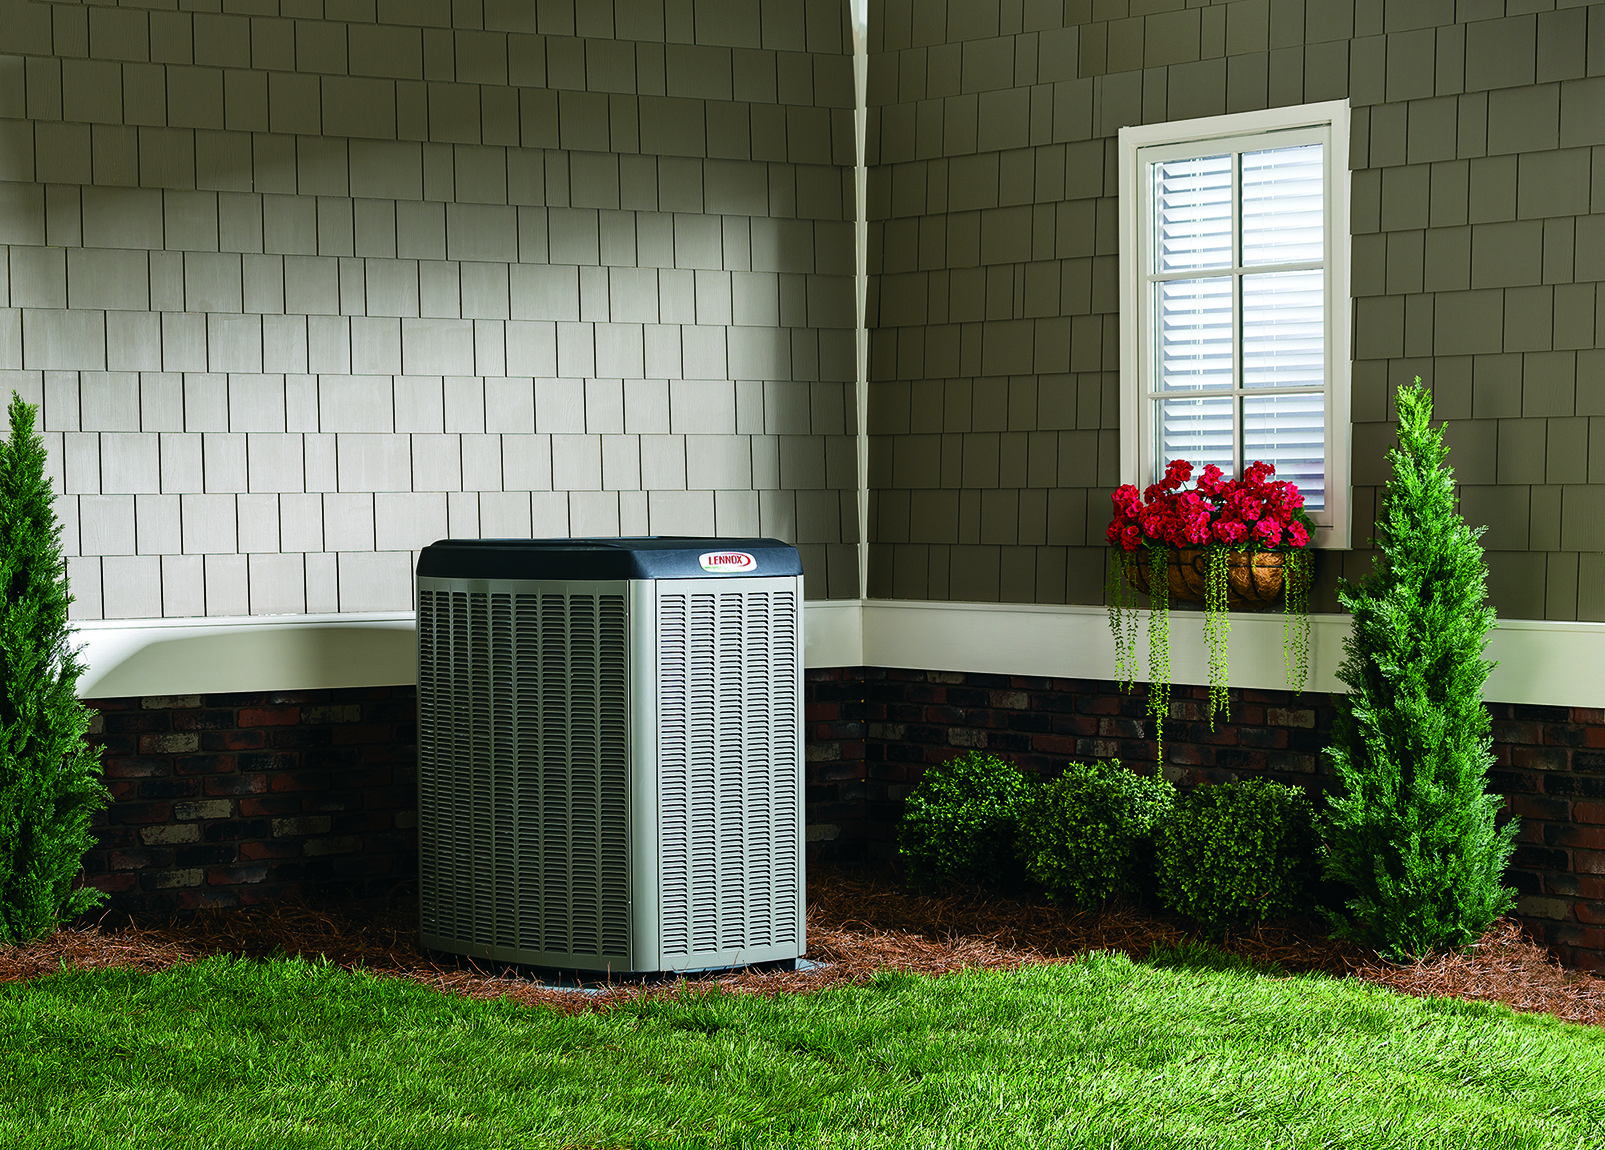 Lennox air conditioning unit in backyard